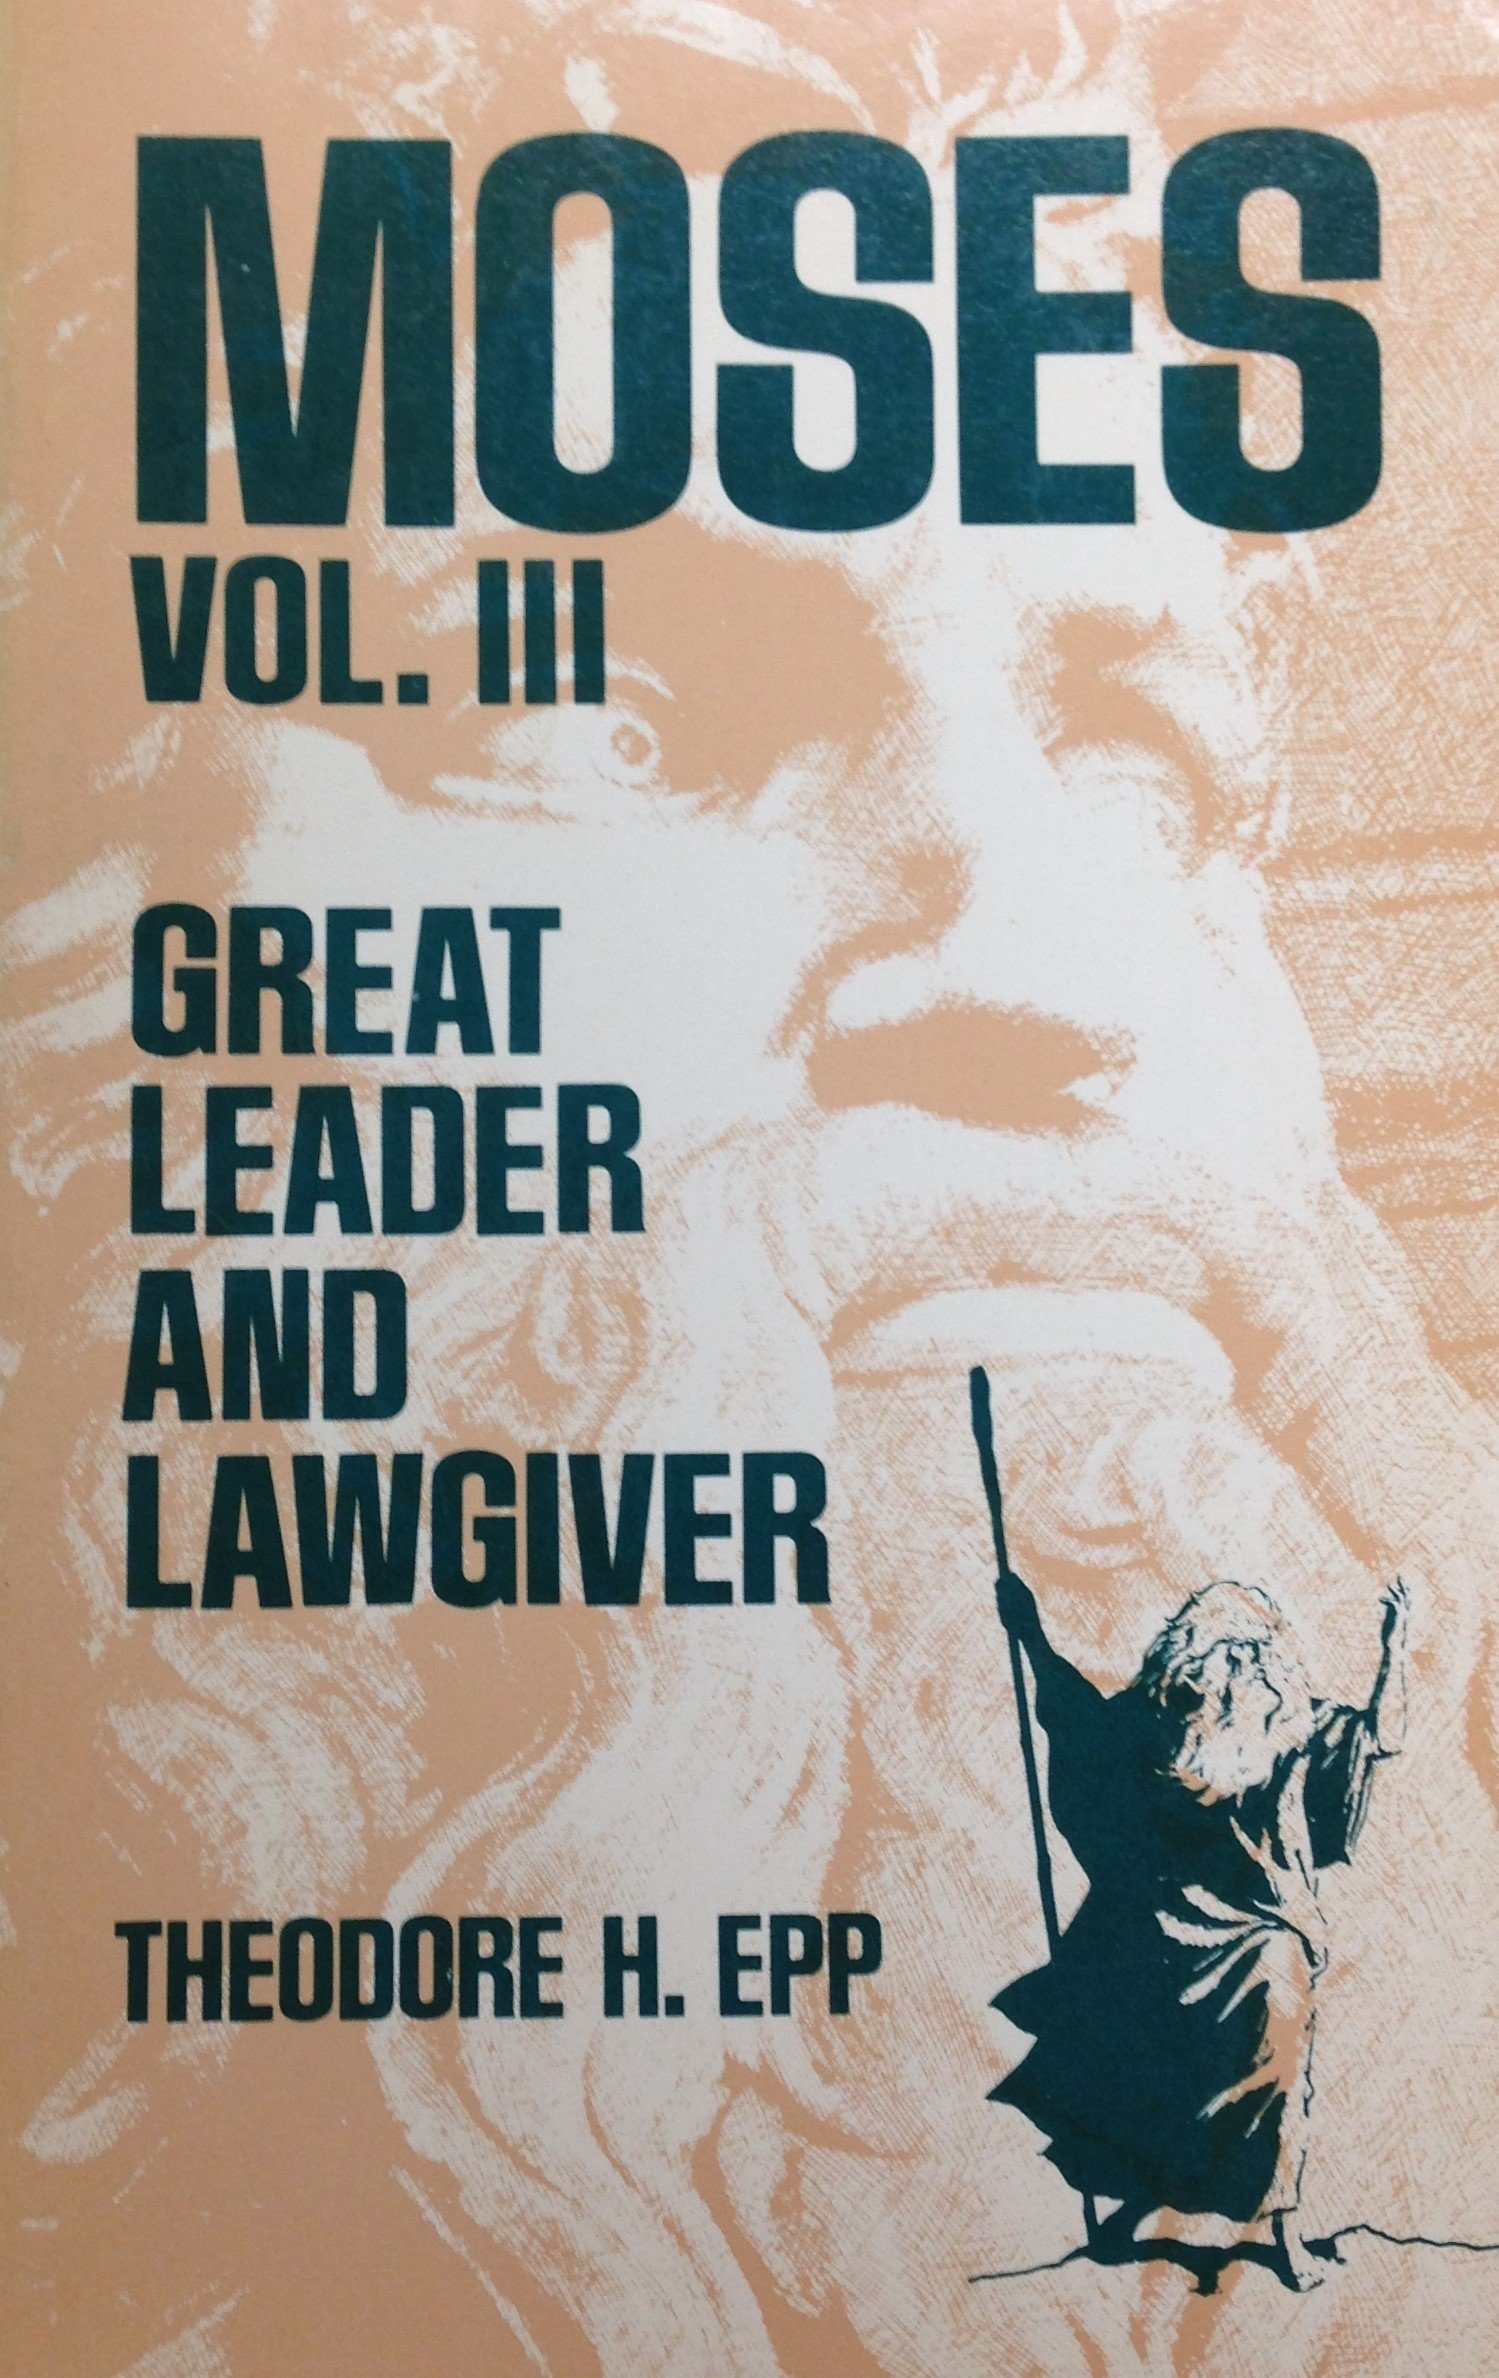 Moses Volume III:  Great Leader and Lawgiver by Theodore H. Epp (USED) 00083